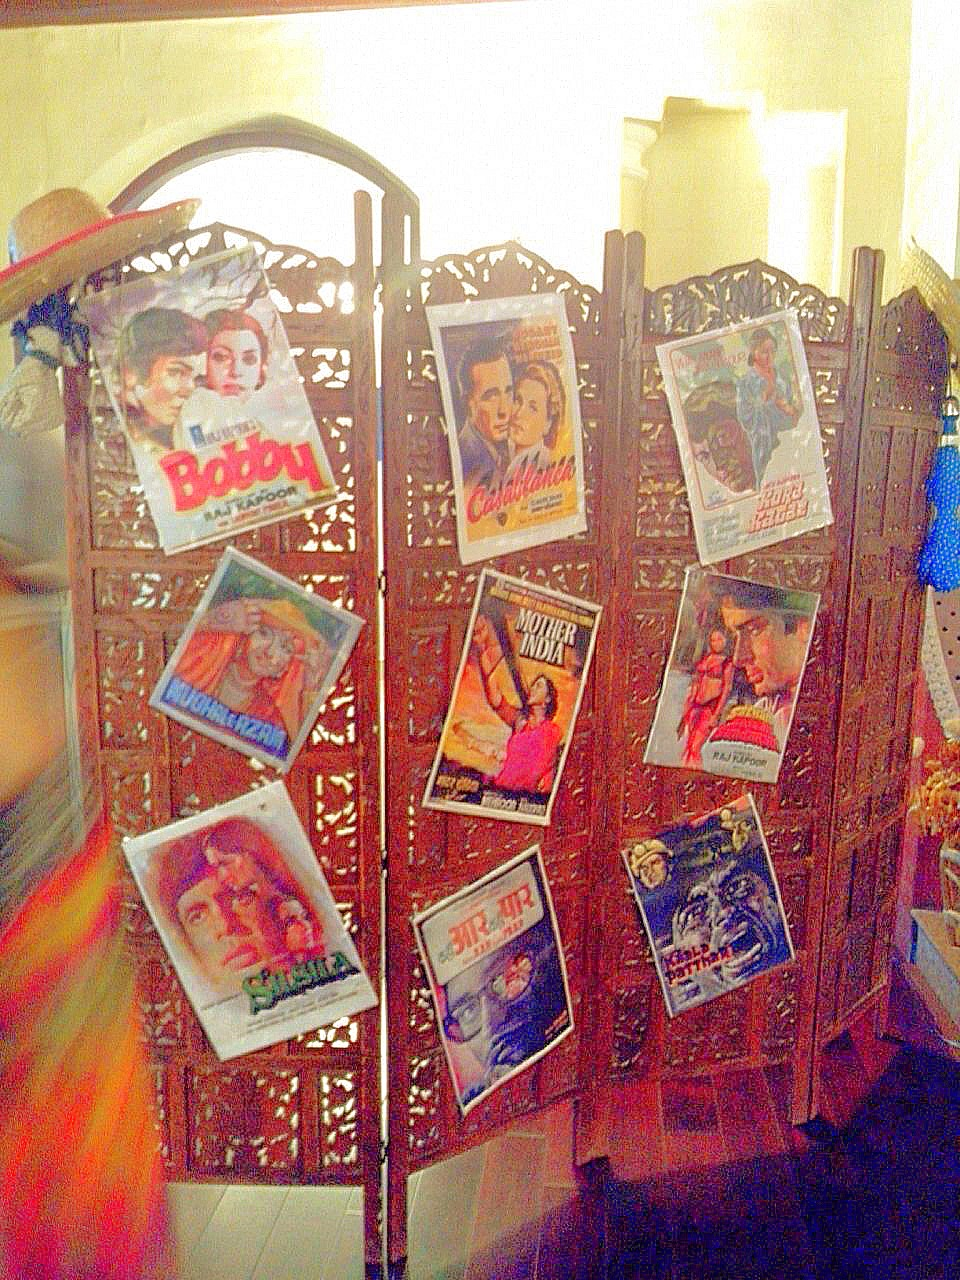 Bollywood Theme Party Decorations Ideas Part - 33: Wpid-img_20140824_223721.jpg. Retro Bollywood Theme-based Decoration ...